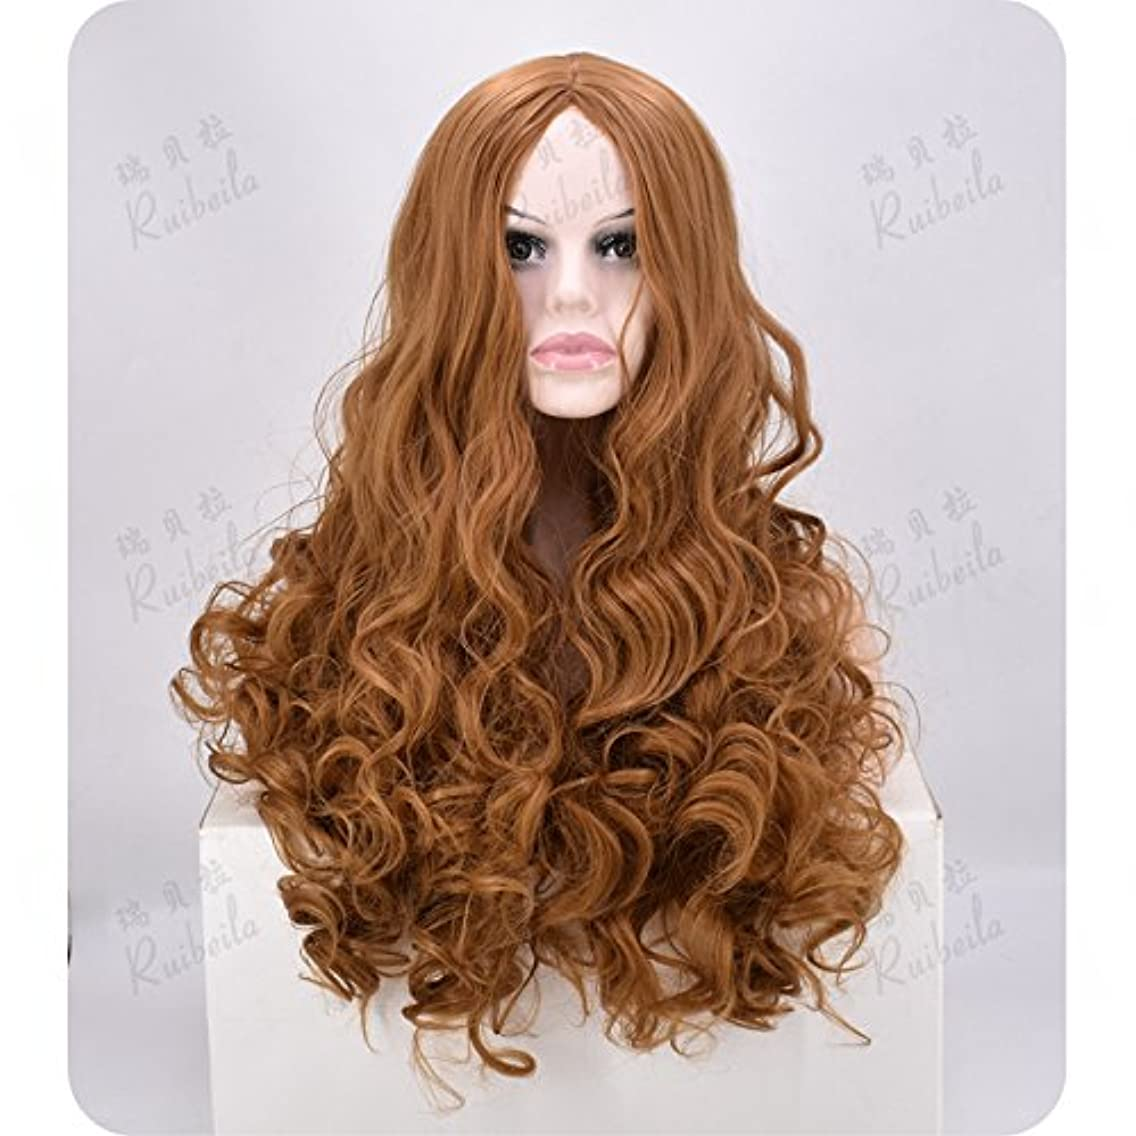 WIAGHUAS Wigs Heat Resistant Women'S Long Curly Hair Wave Curls Natural Fluffy Wig Korean Version,Linen